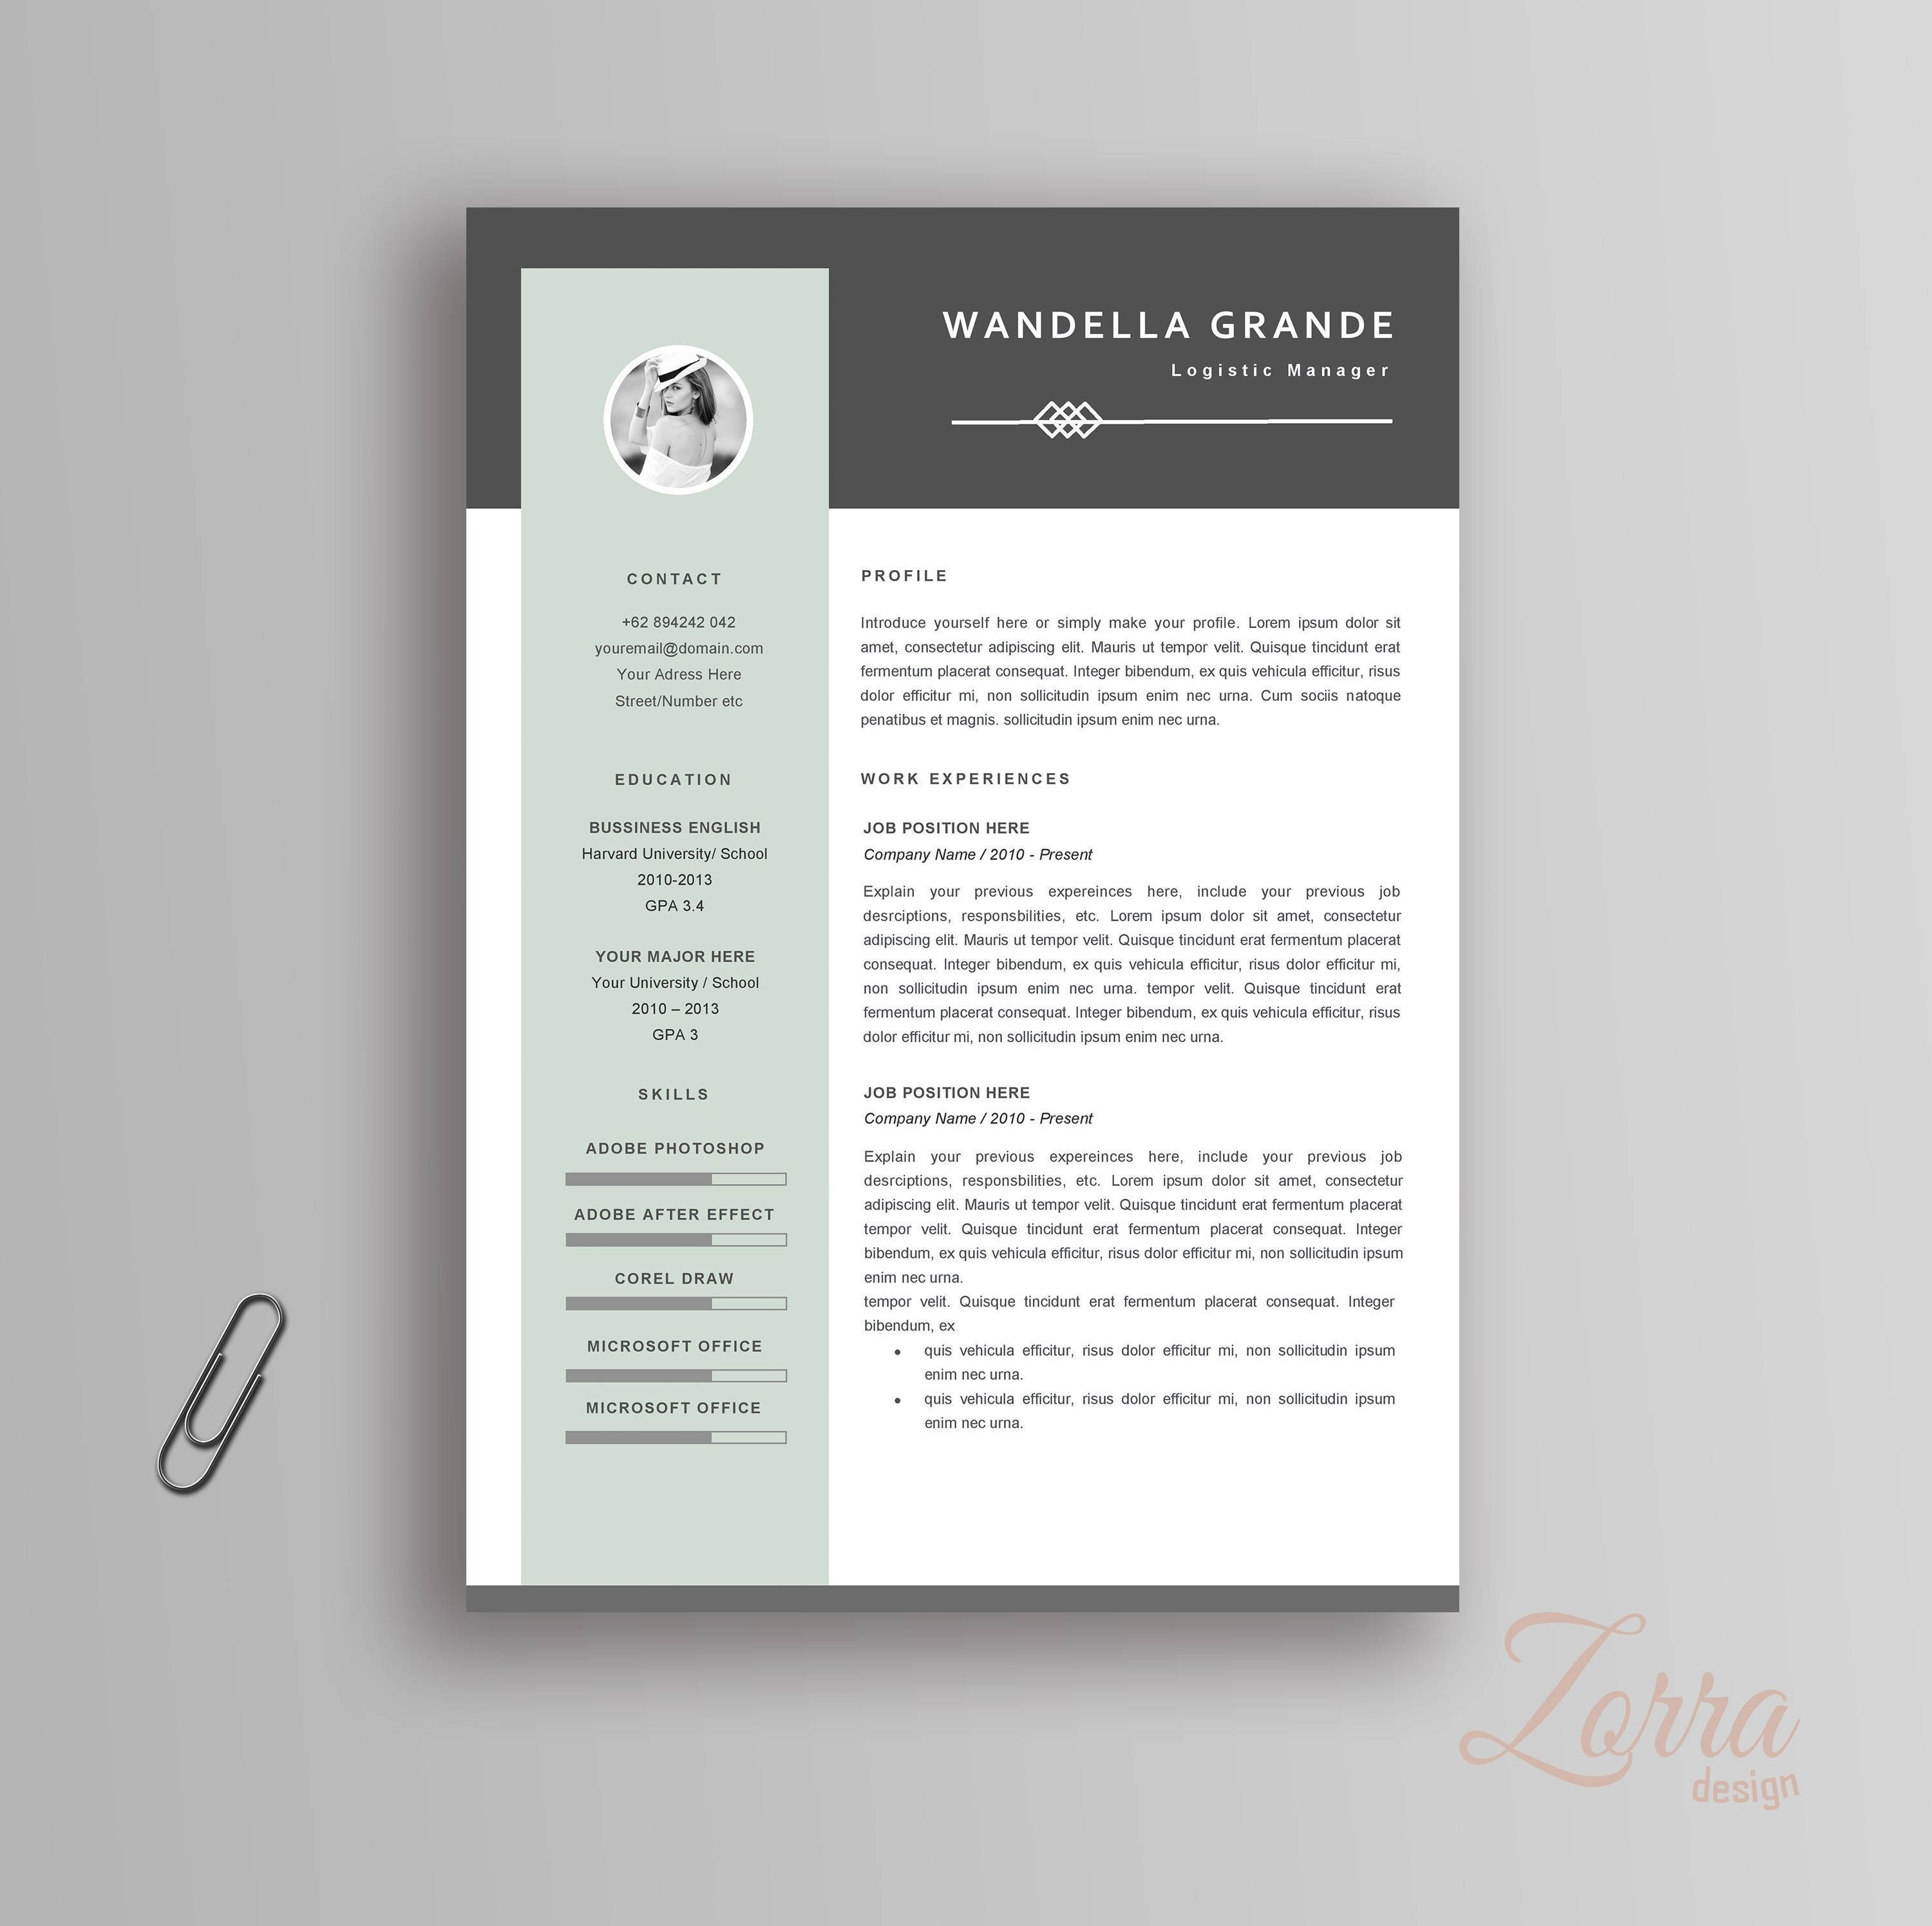 Modern Resume Template / CV For Microsoft Office Word | Pages Curriculum  Vitae + Cover Letter & Reference Letter Professional and Creative